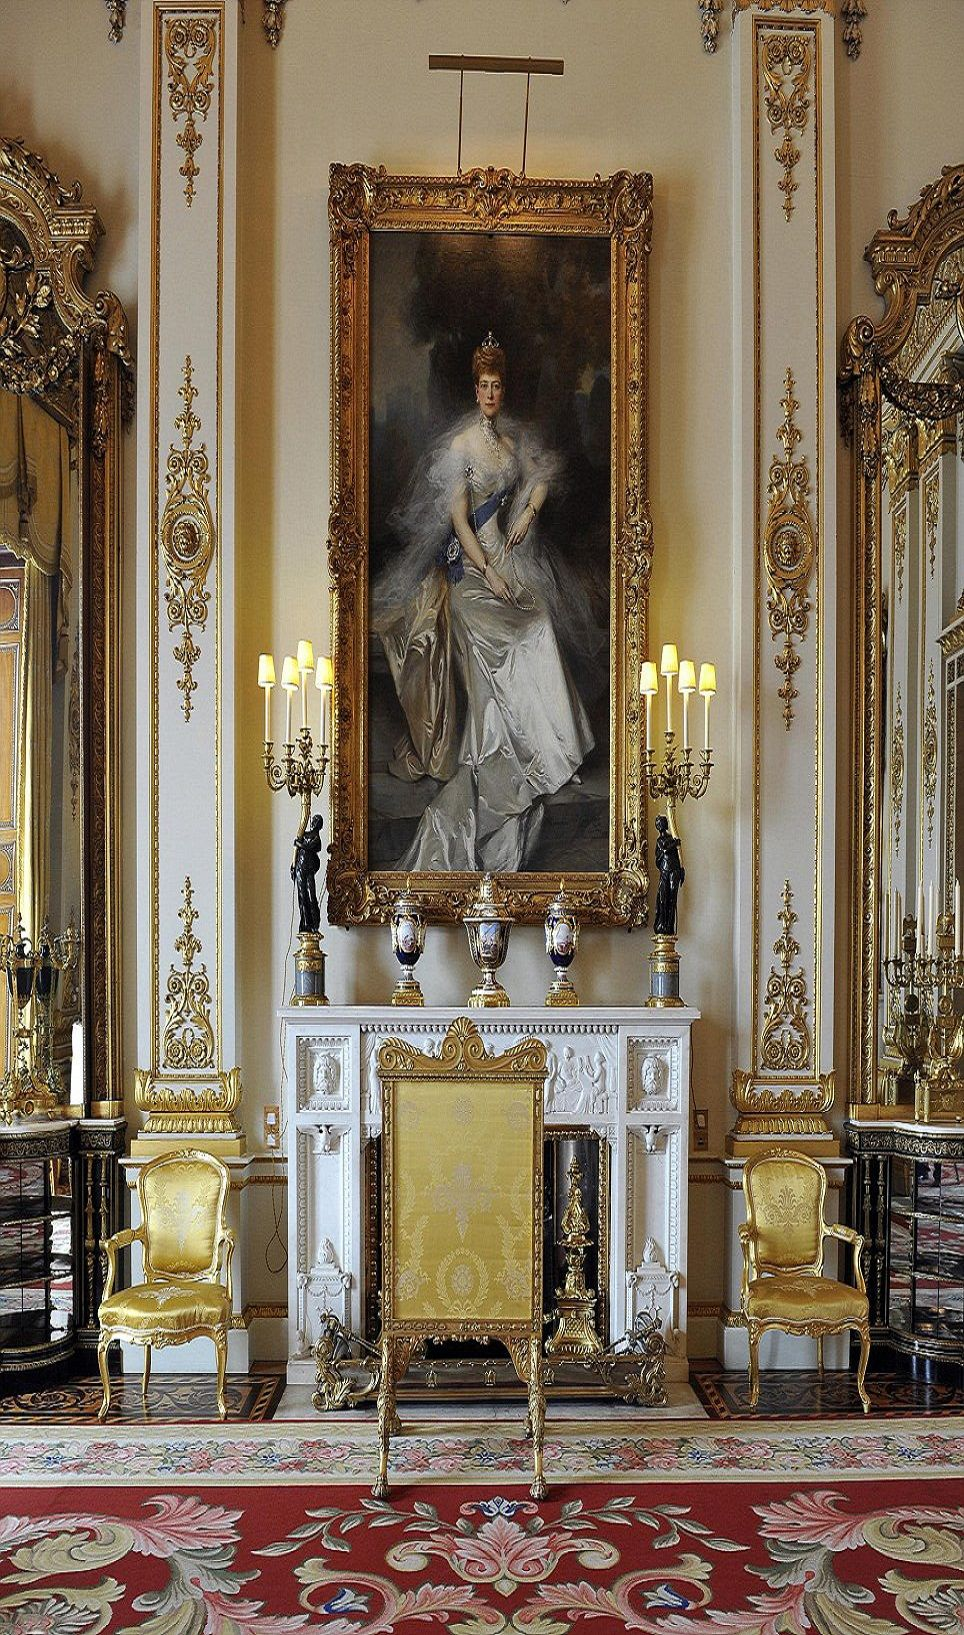 Castle Drawing Room: Inside The Buckingham Palace